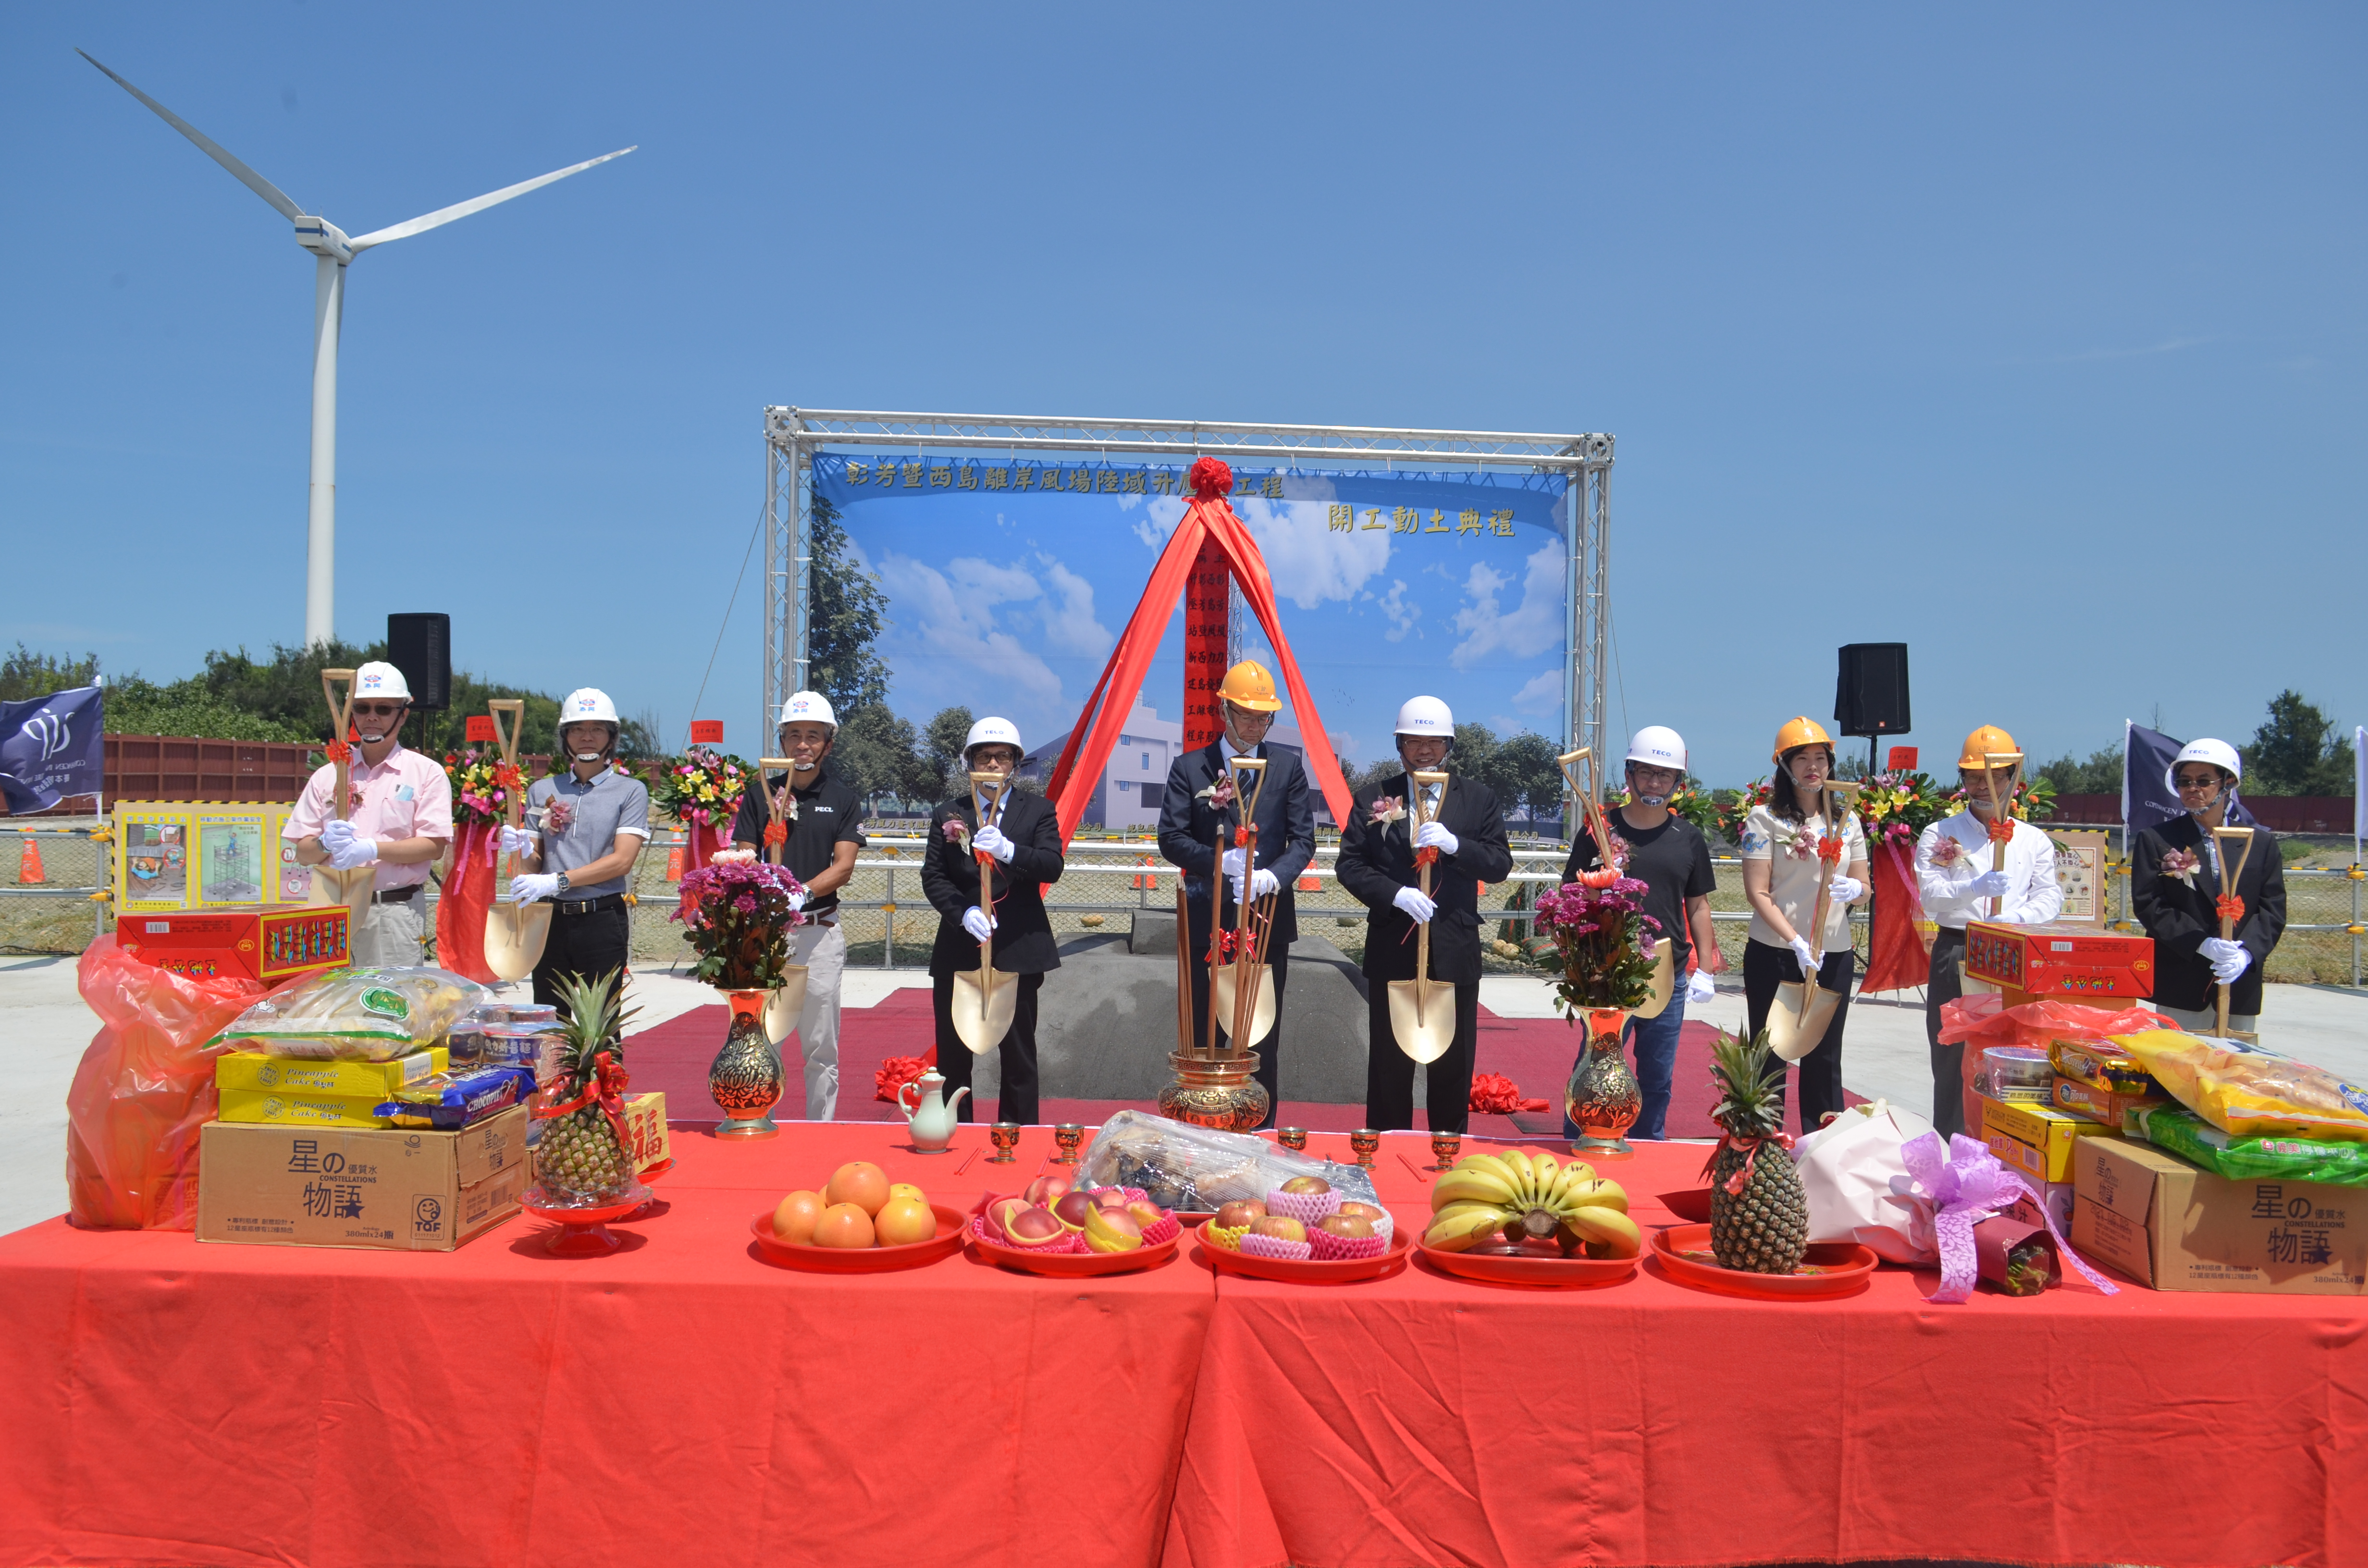 Onshore Engineering for Changfang & Xidao Wind Farms Breaks Ground